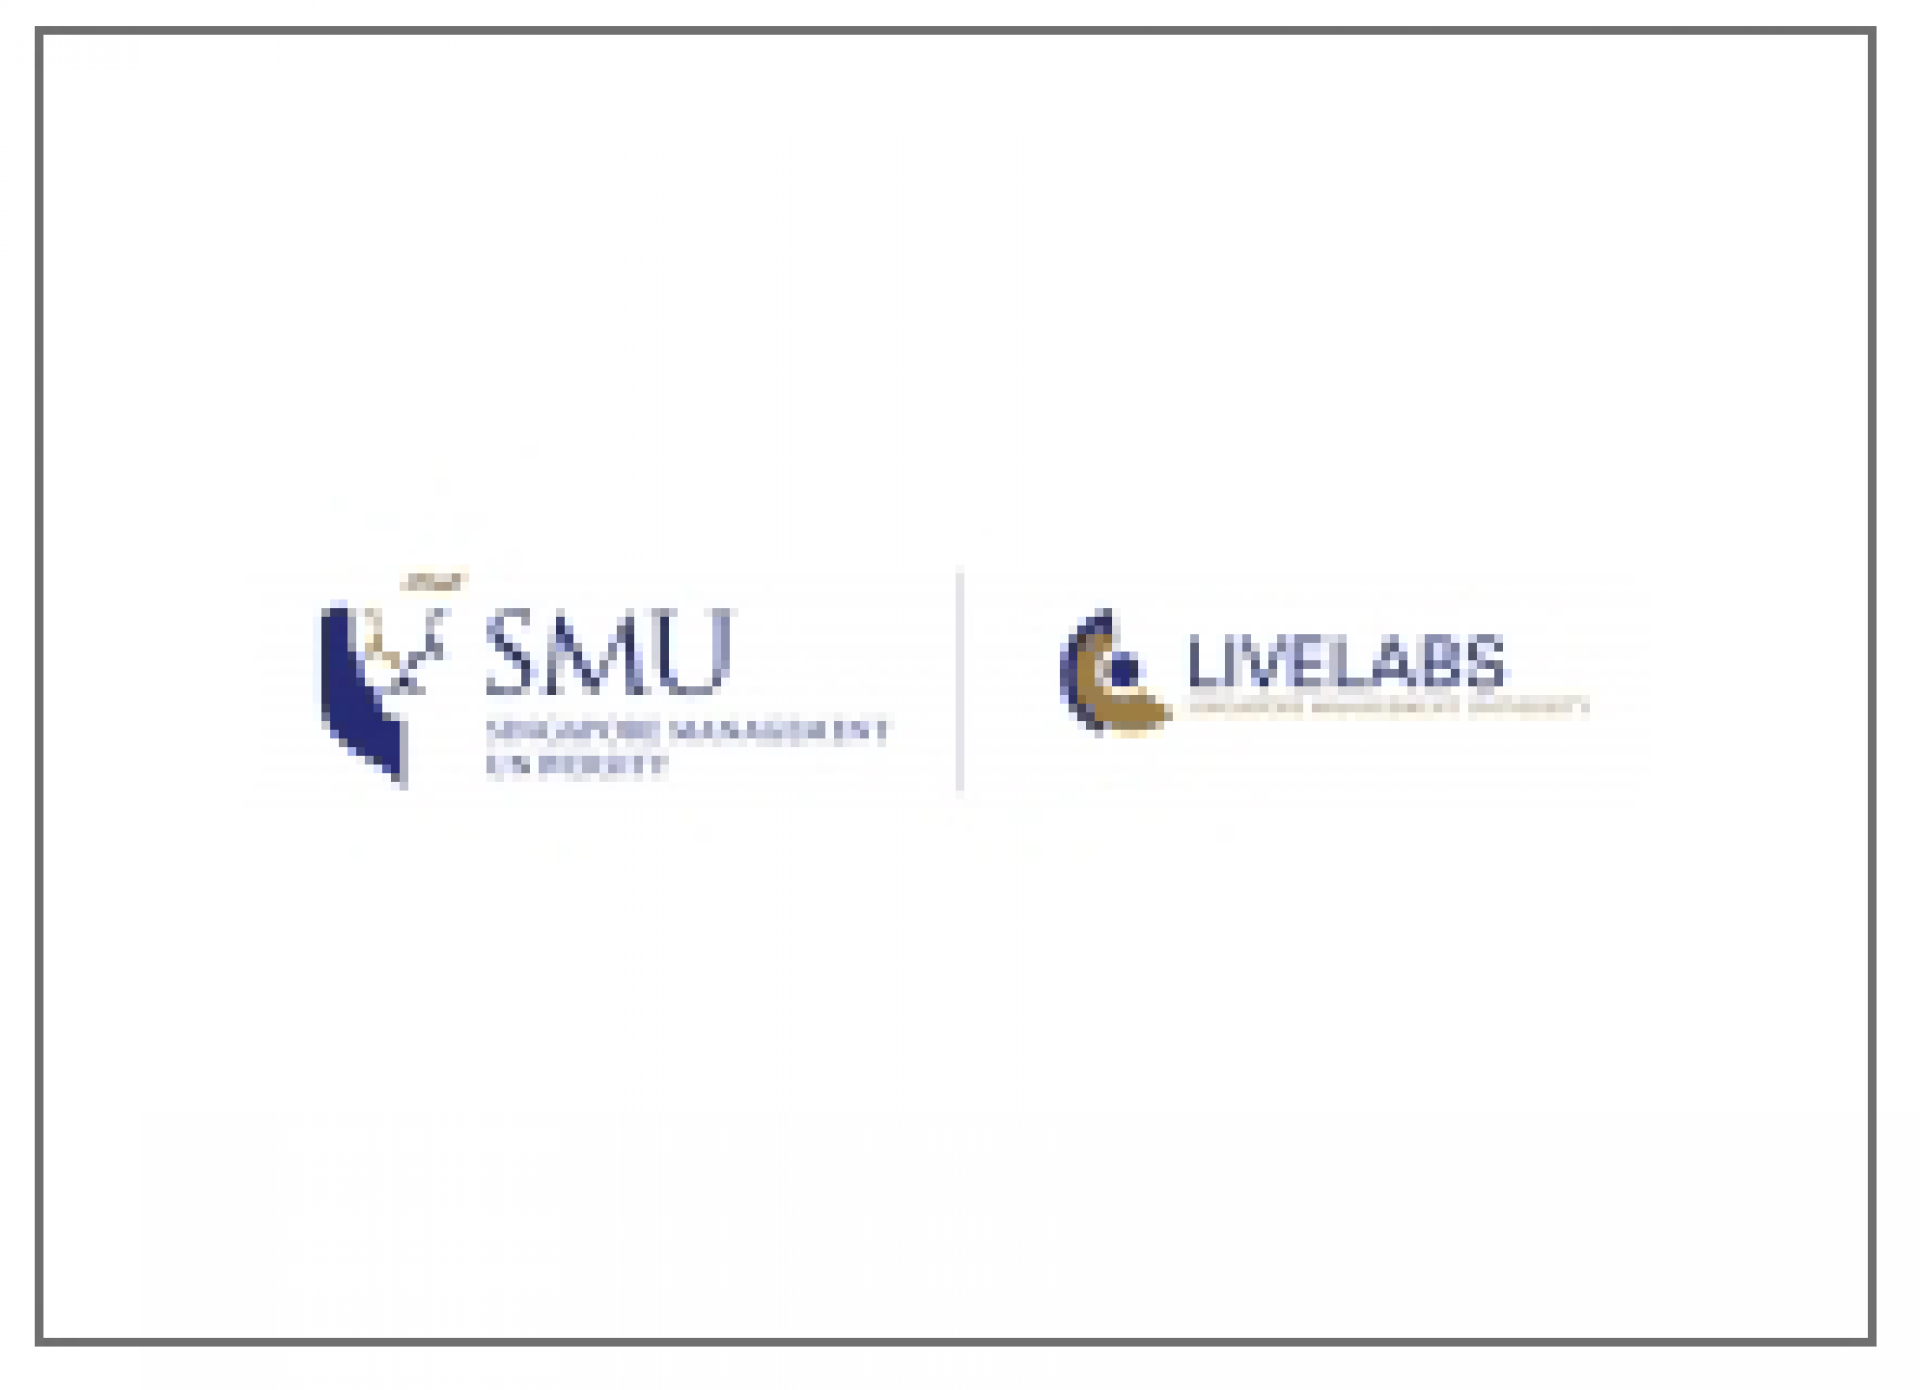 Singapore Management University - LiveLabs